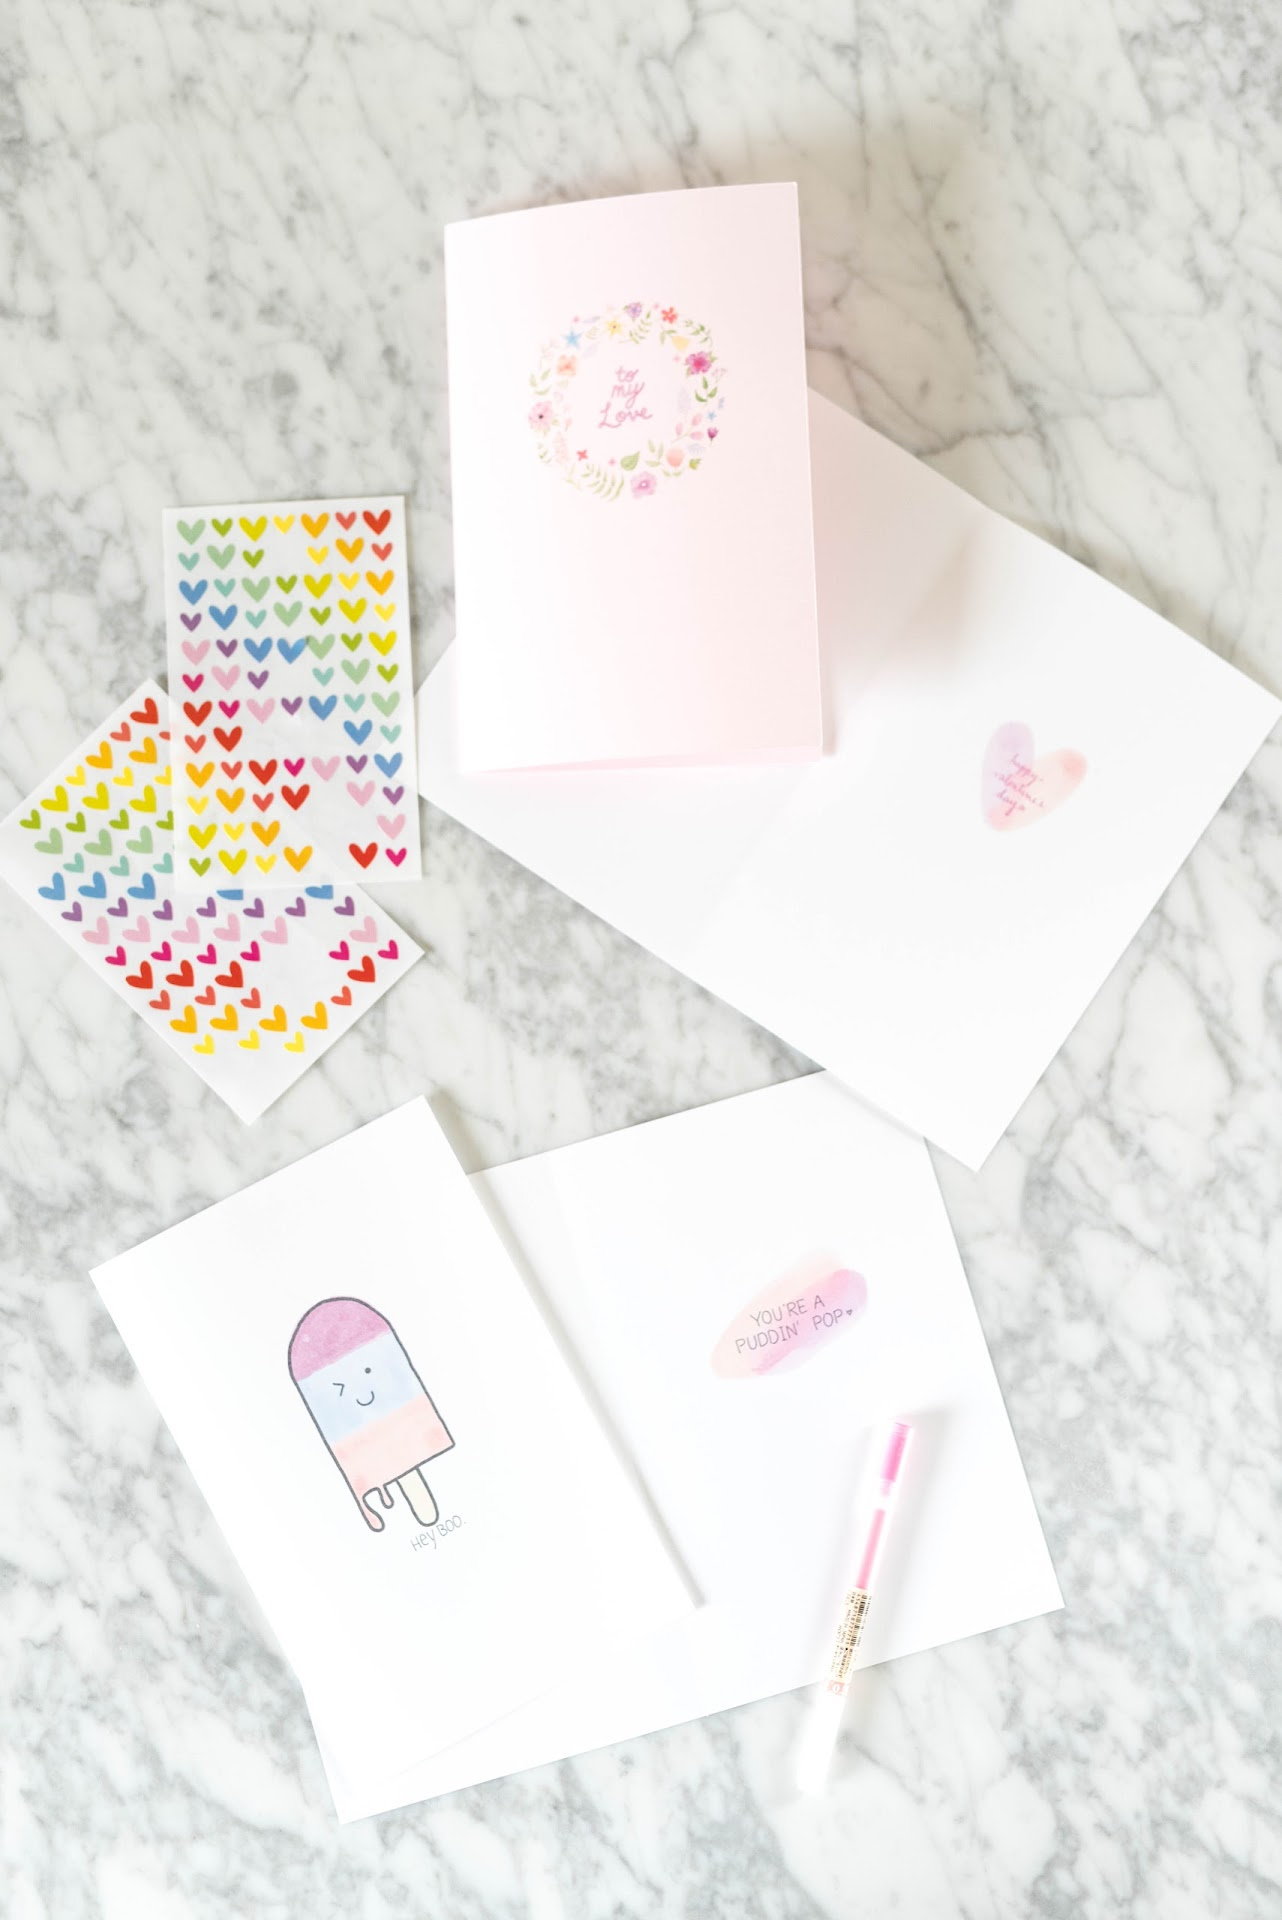 diy valentine's day cards, cute cards, pretty, diy, craft, homemade, kawaii, diy blogger, pudding pop, pink, vday, gifts for husband, boyfriend, wife, girlfriend, hey boo, watercolor digital drawing